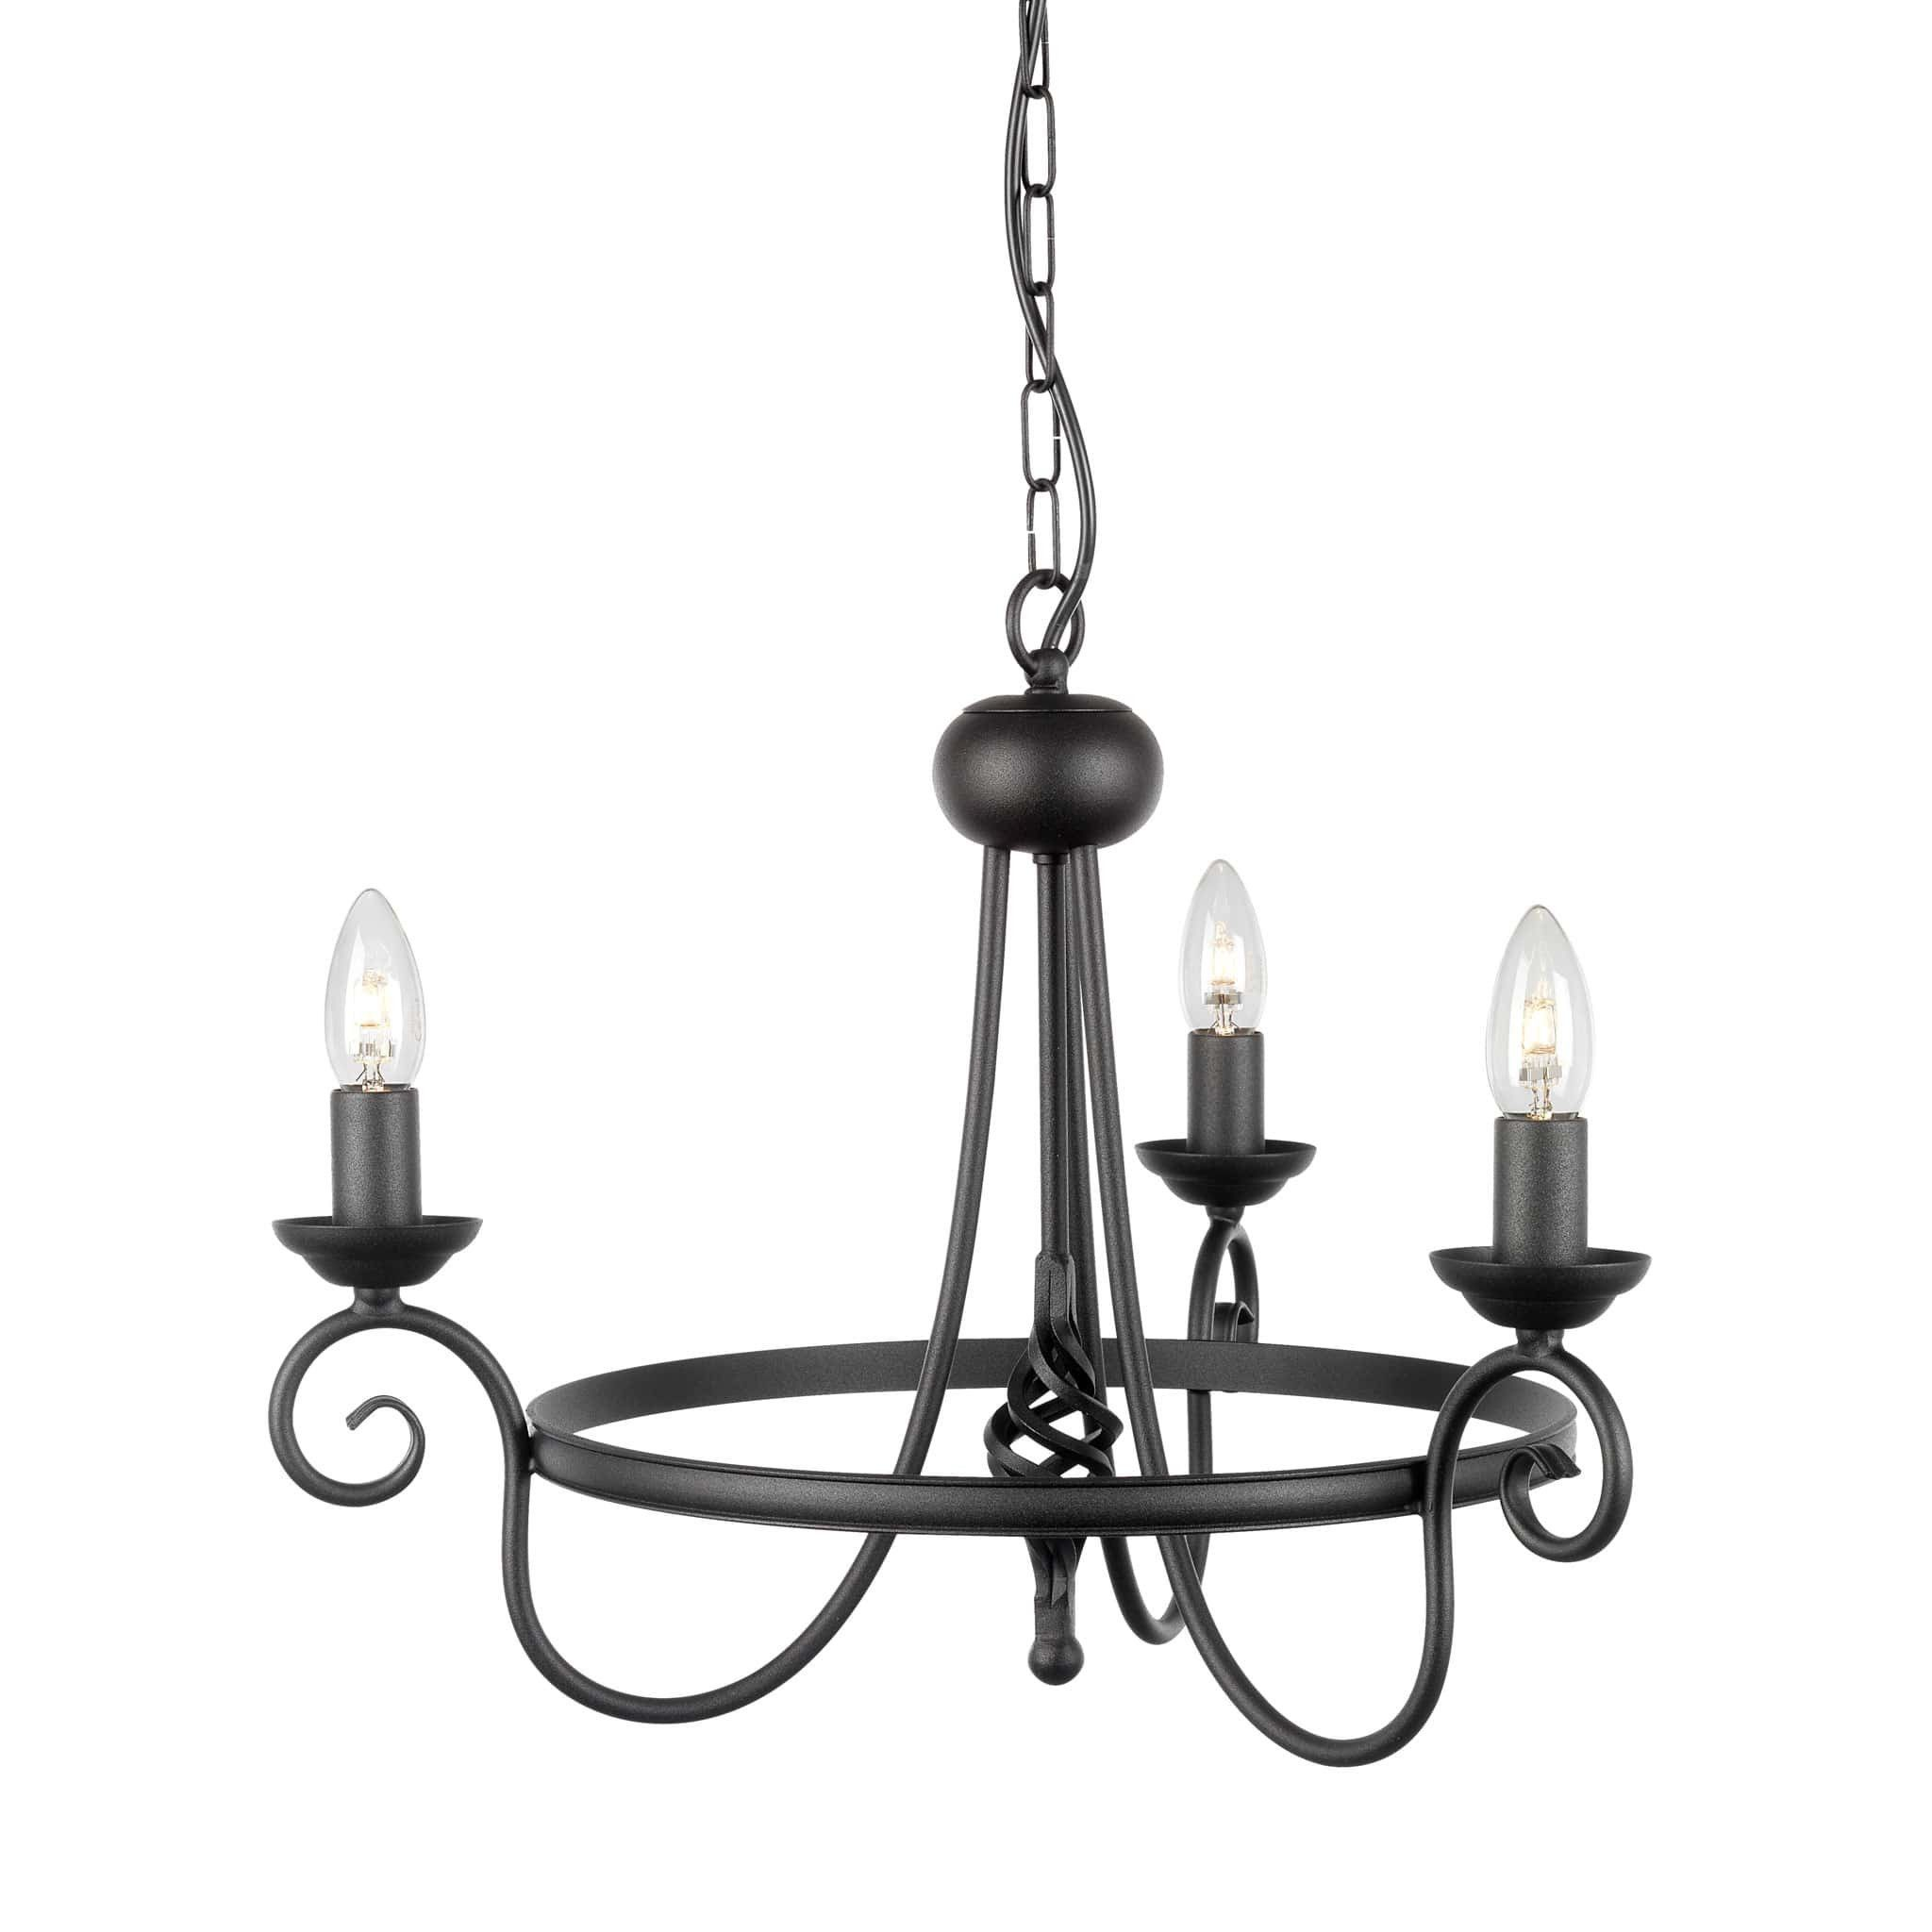 Elstead harlech 3 light black metal candle chandelier candle elstead harlech 3 light black metal candle chandelier arubaitofo Choice Image